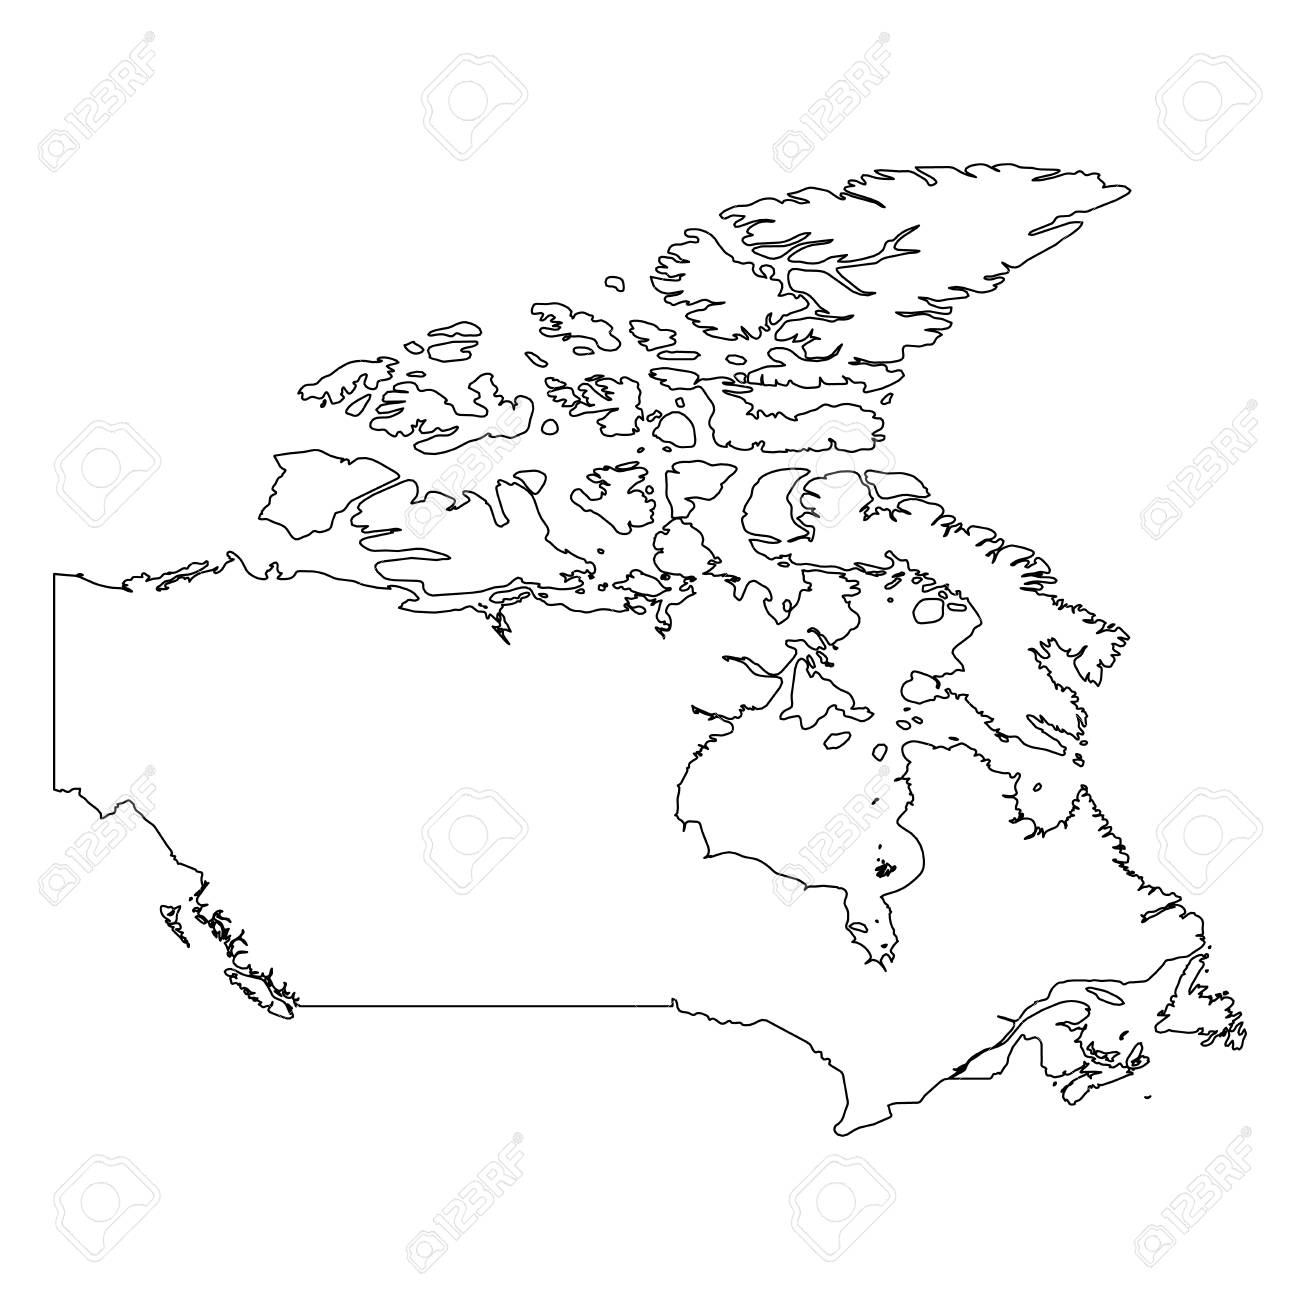 Map Of Canada Simple.Canada Solid Black Outline Border Map Of Country Area Simple